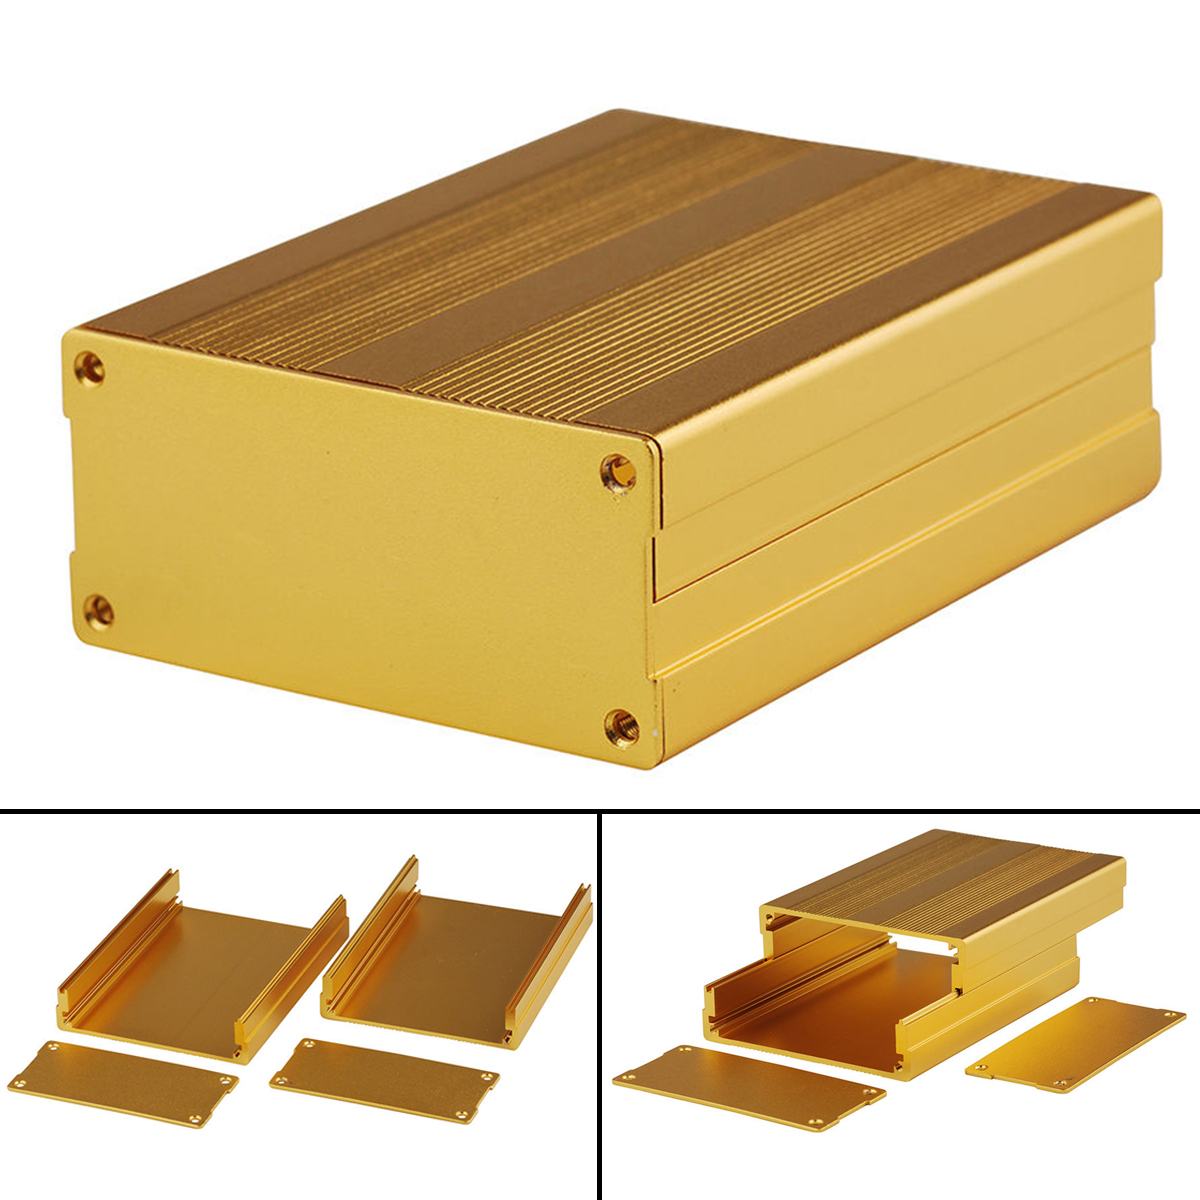 Gold Extruded Aluminum Enclosure Electronic Project Amplifier Circuit Board Box Case 100x76x35mm 215 52 263 mm w h l aluminum extruded enclosures housing project box case